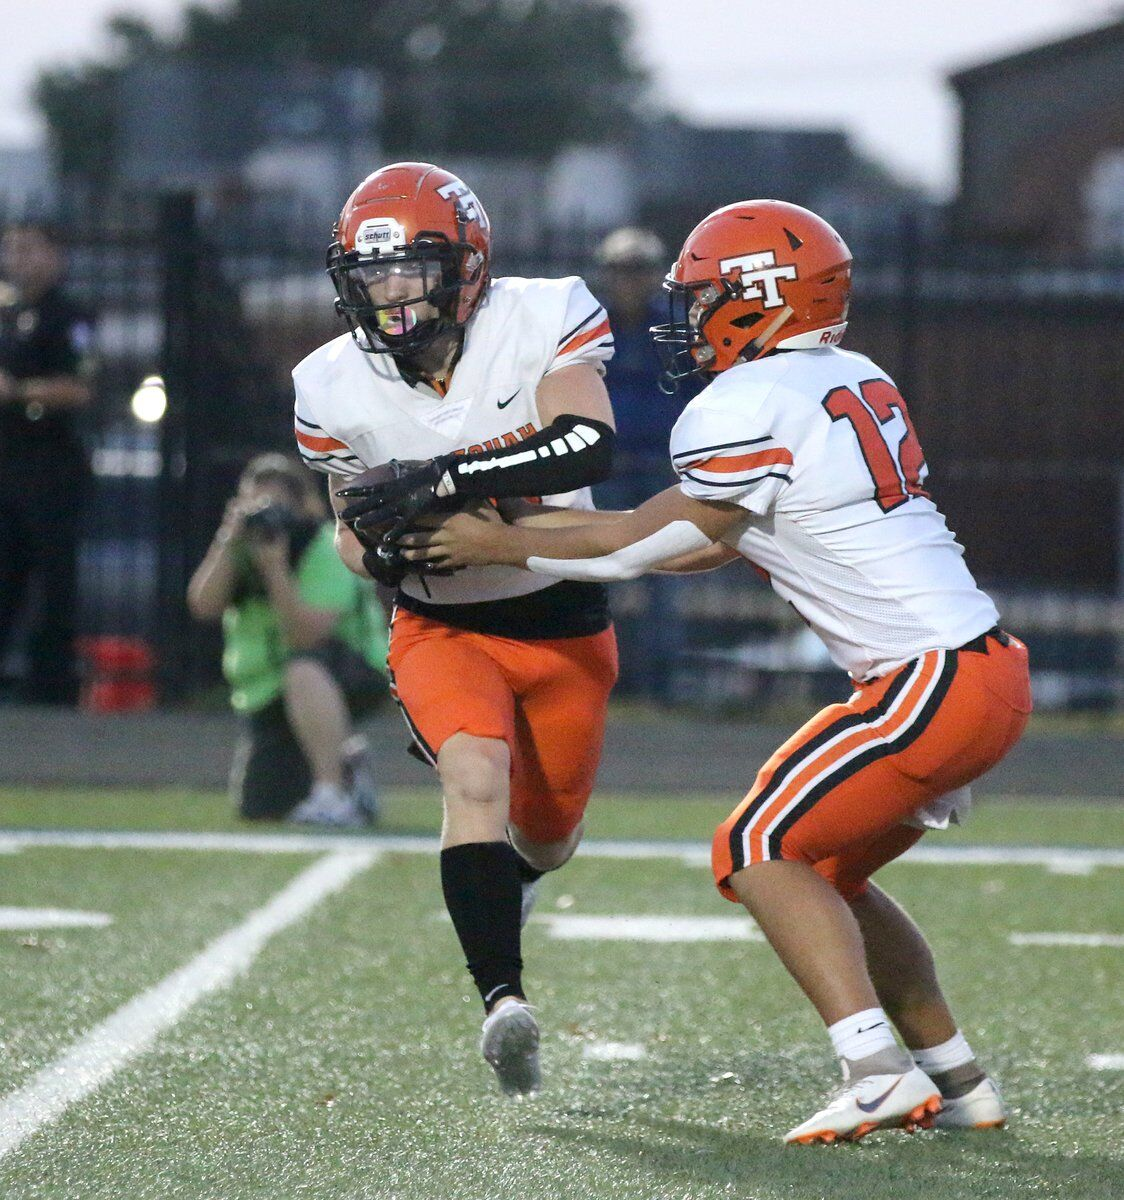 Looking to bounce back: Tigers host Claremore Thursday night